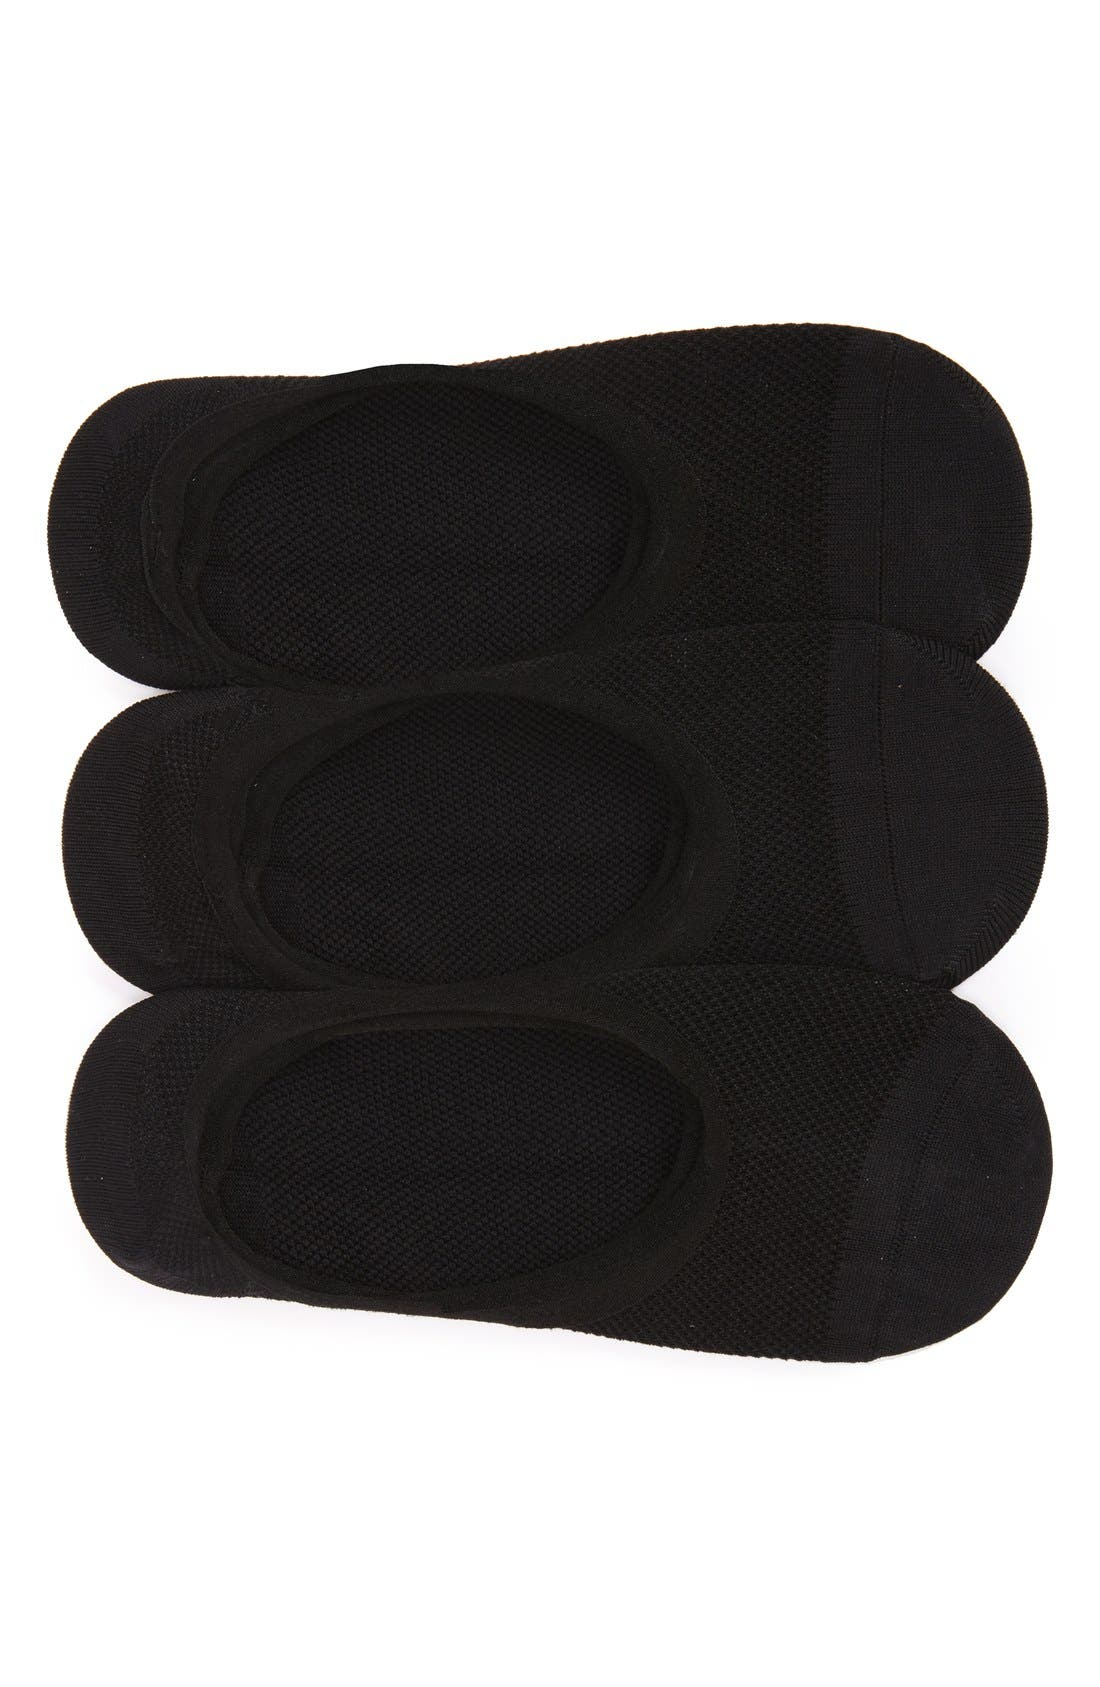 Main Image - Sof Sole All Sport Lite 3-Pack No-Show Socks